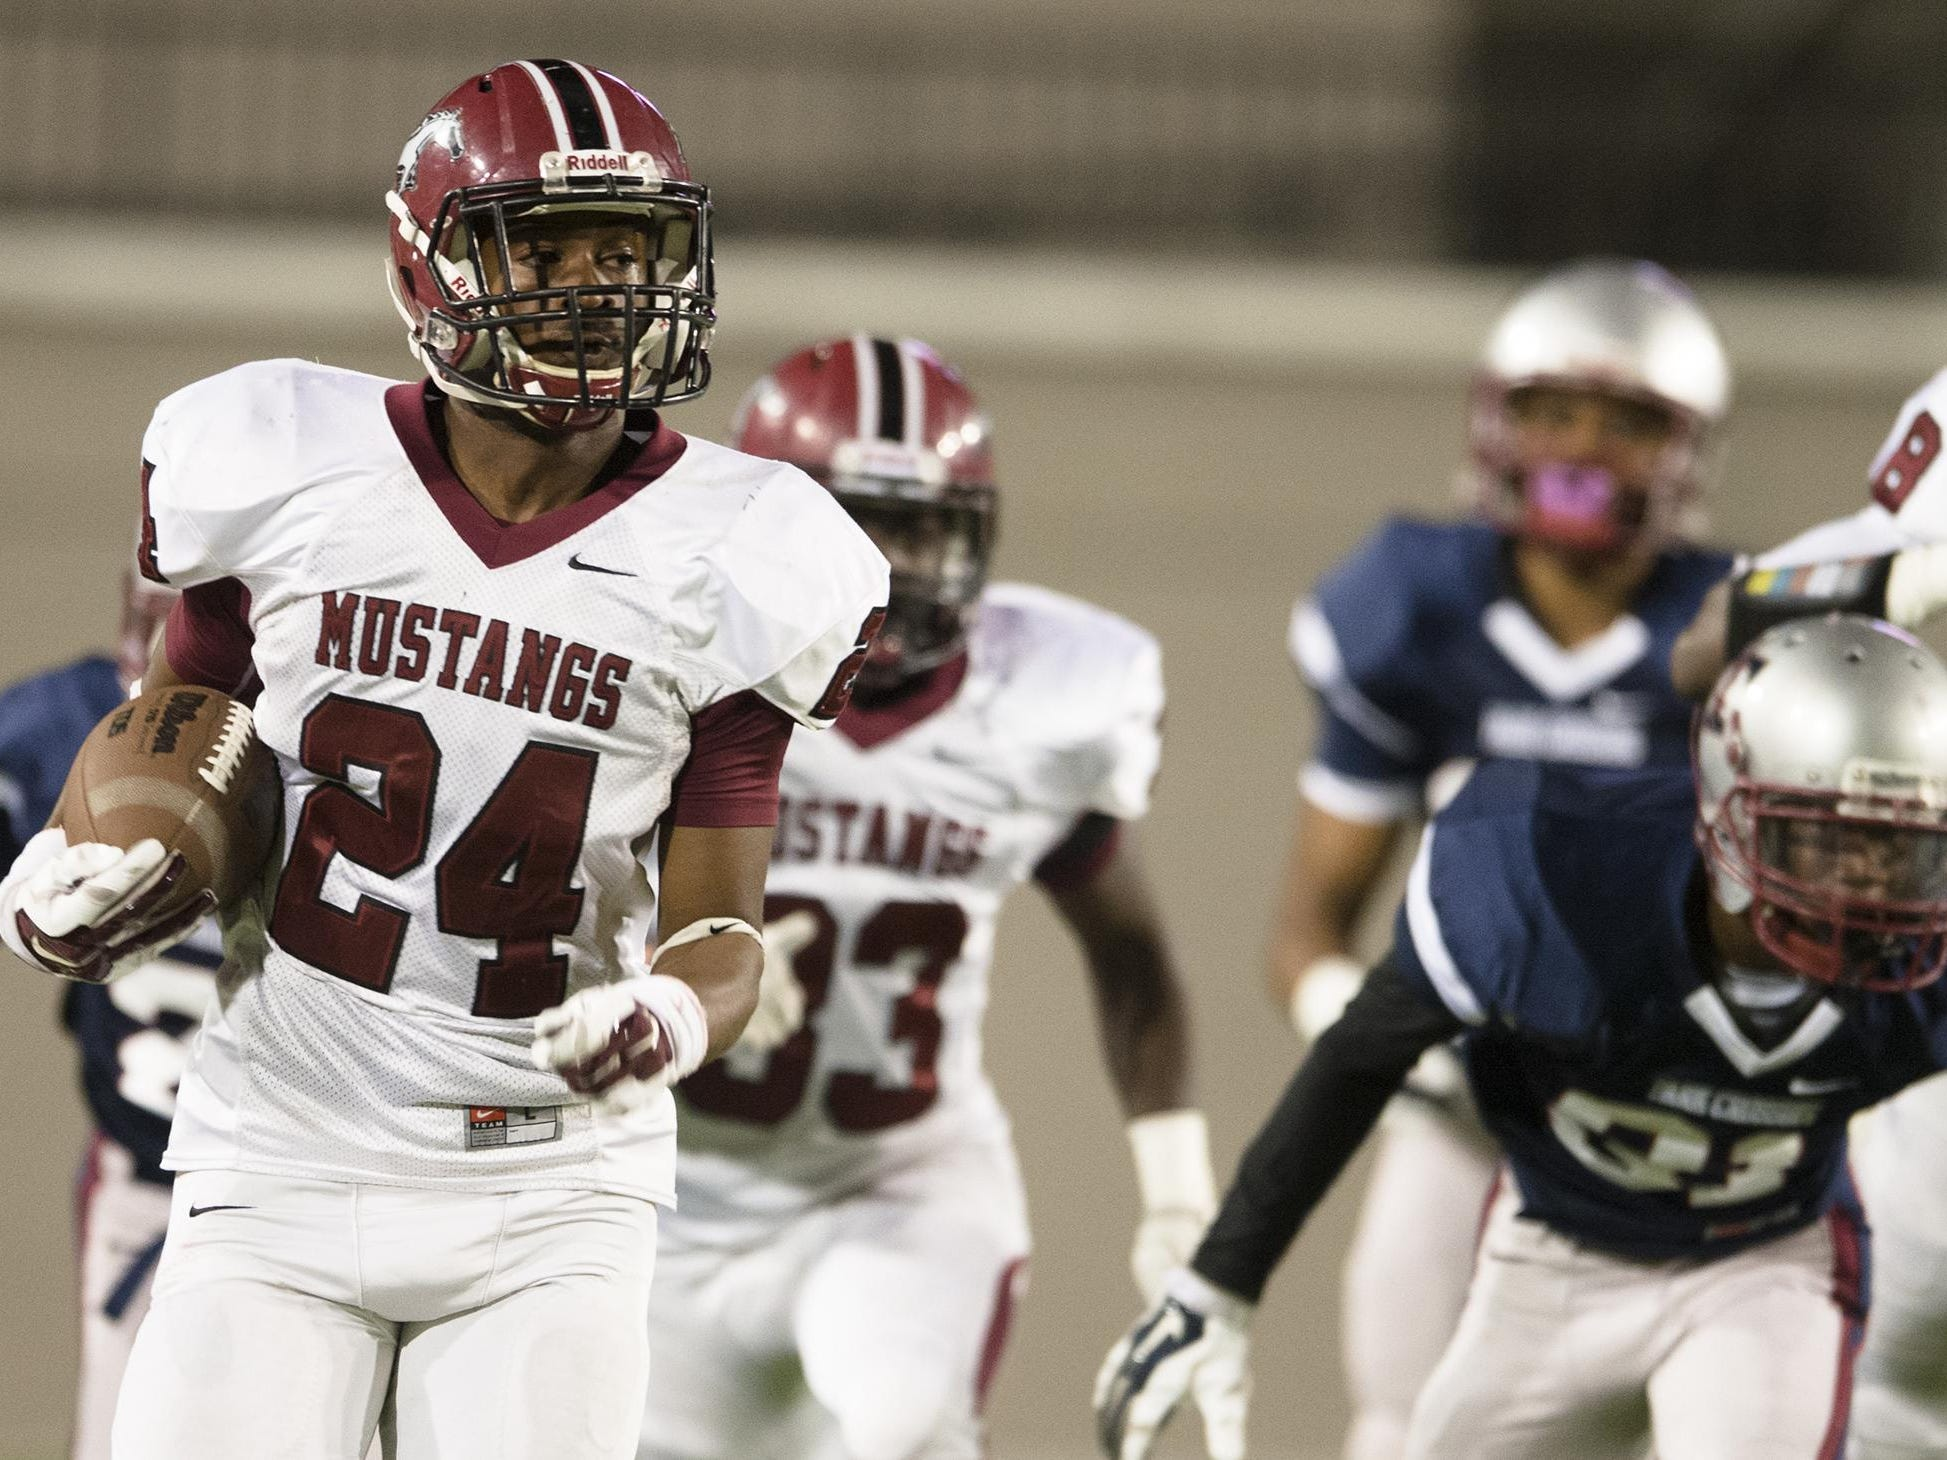 Stanhope running back Willie Ezell (24) runs downfield during the game between Park Crossing High and Stanhope Elmore High on Thursday, Oct. 23, 2014, at the Cramton Bowl in Montgomery, Ala.